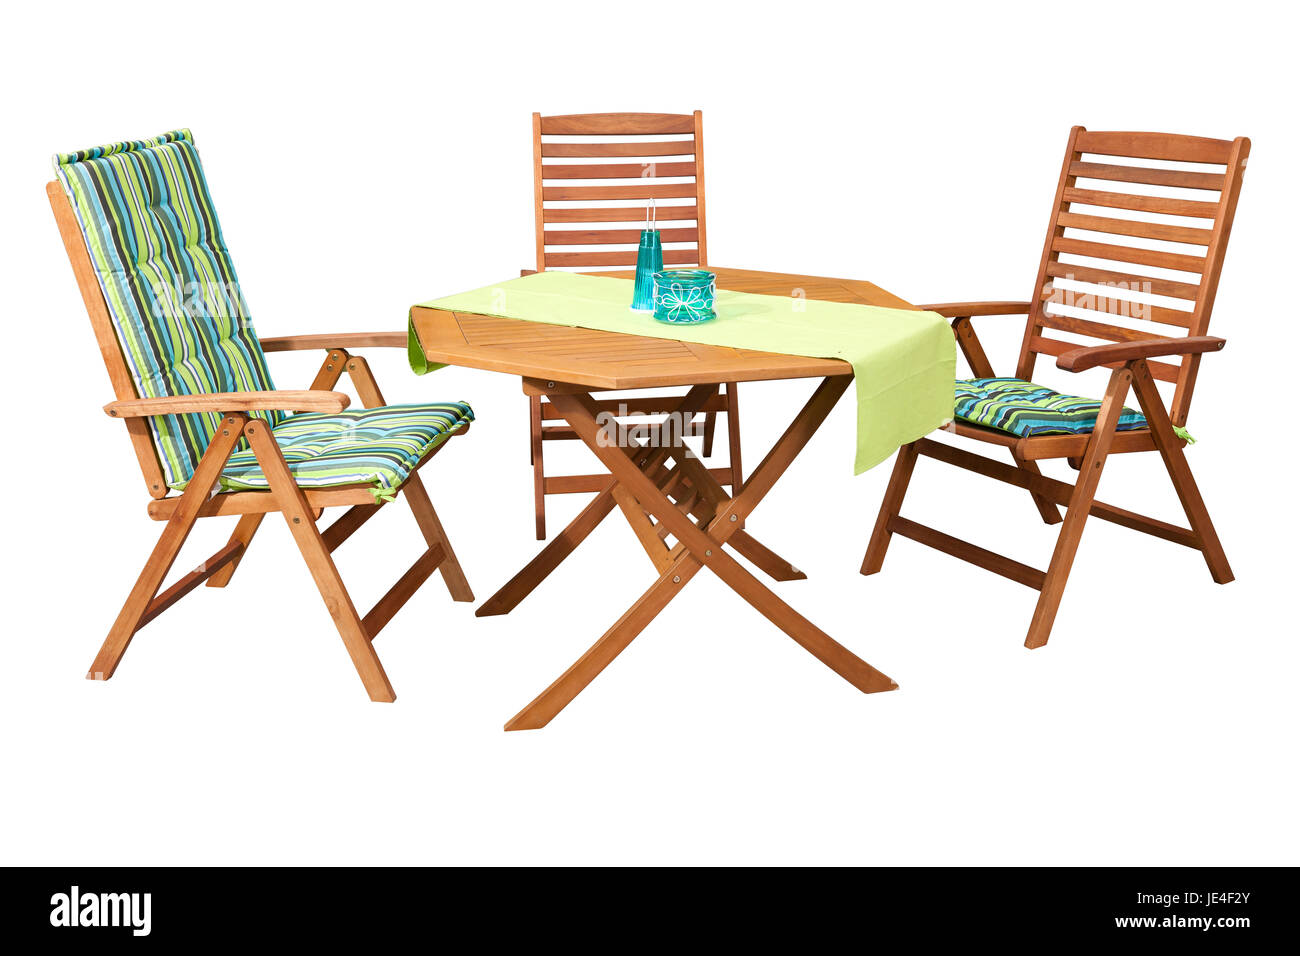 Set Of Folding Wooden Garden Furniture Table And 3 Chairs Isolated